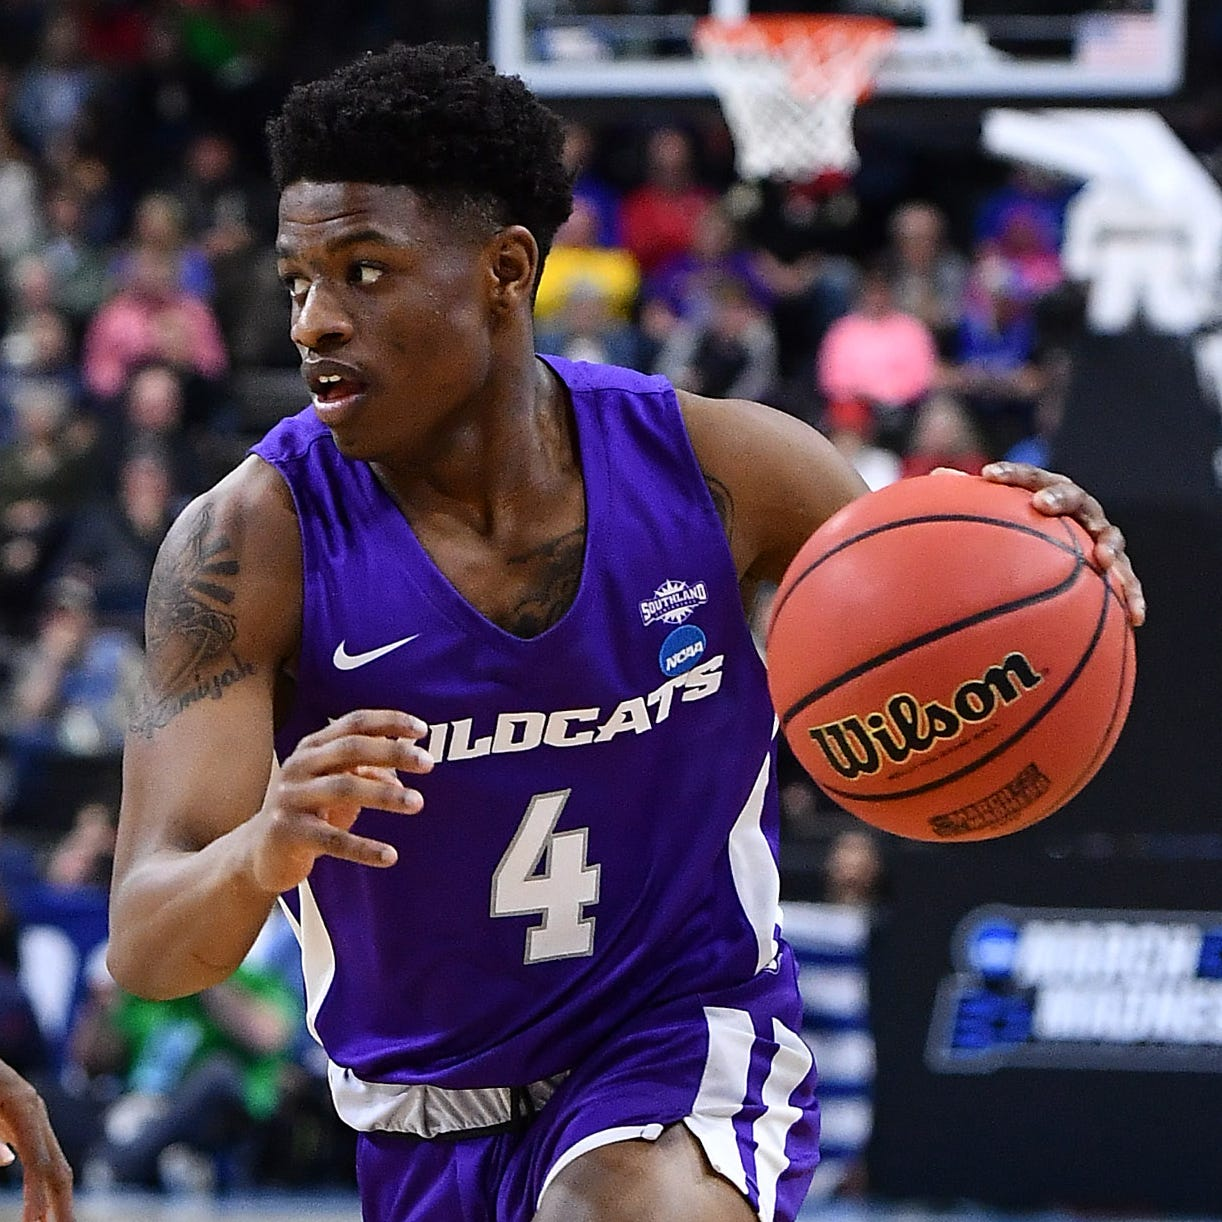 NCAA Tournament: Historic Abilene Christian men's basketball season ends against Kentucky